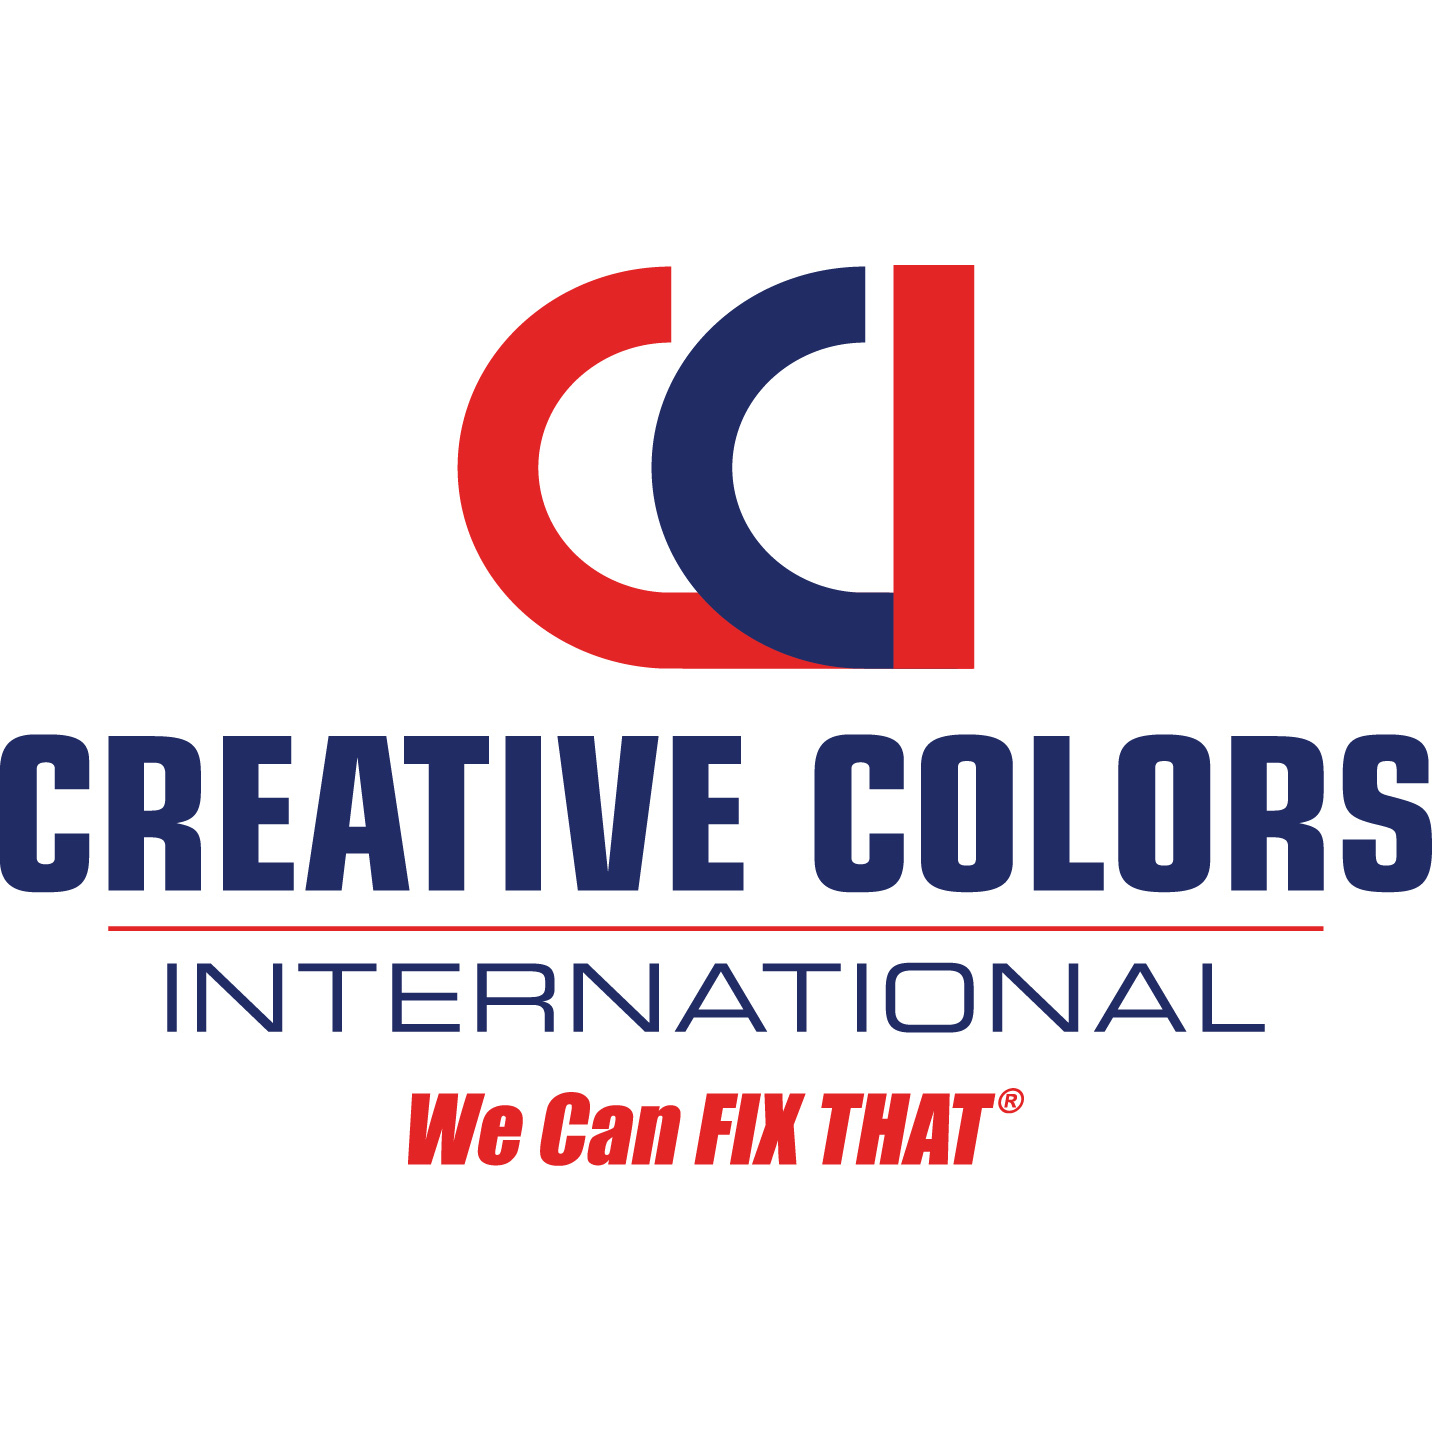 Creative Colors International image 0